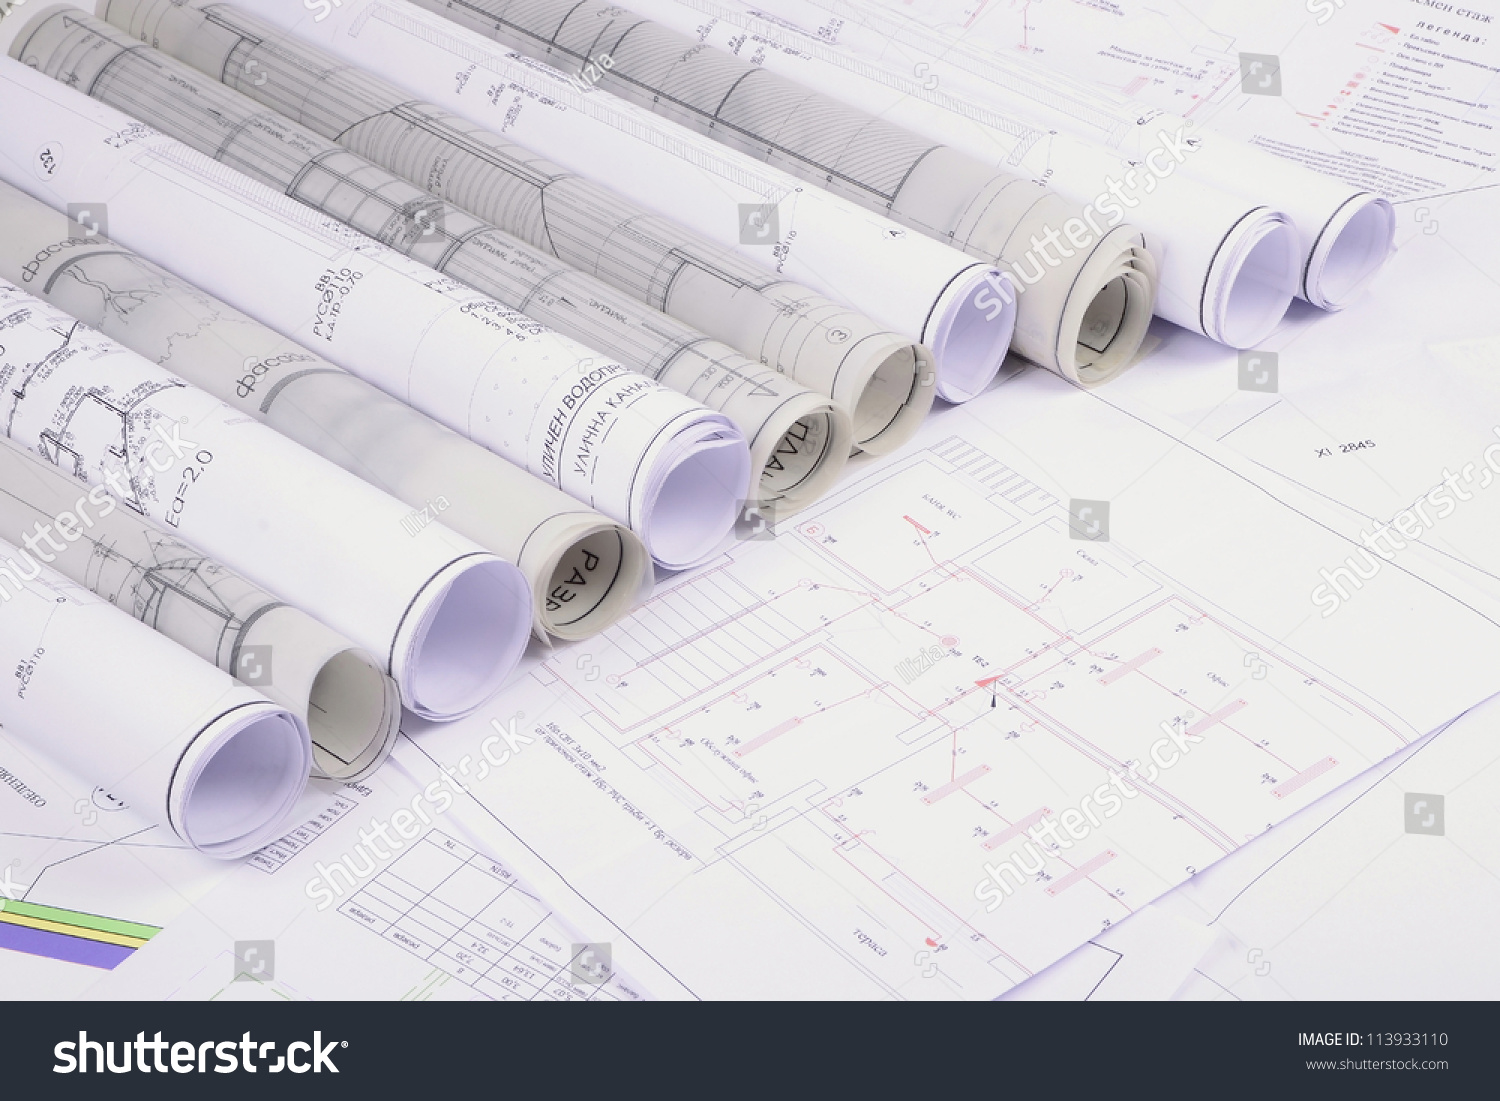 Architectural plans of the old paper tracing paper stock for Paper for architectural drawings